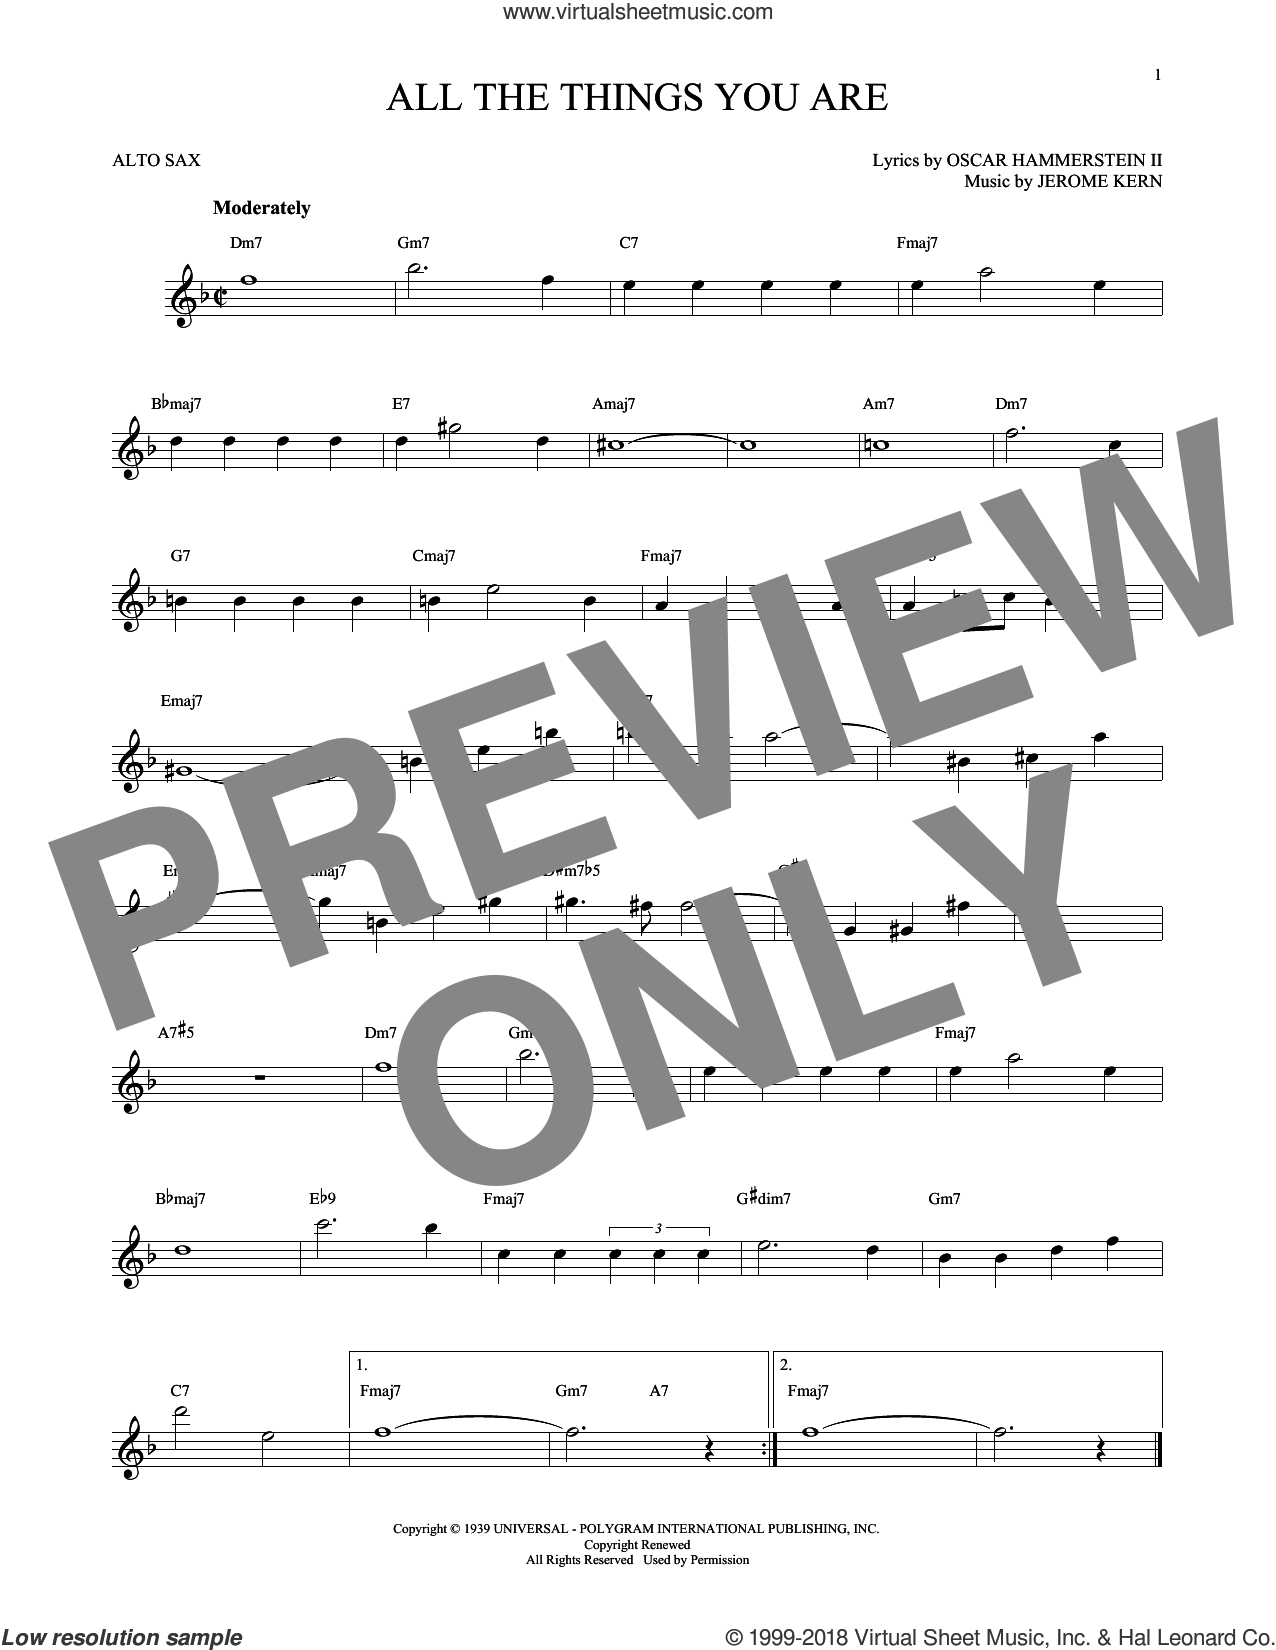 All The Things You Are sheet music for alto saxophone solo by Oscar II Hammerstein